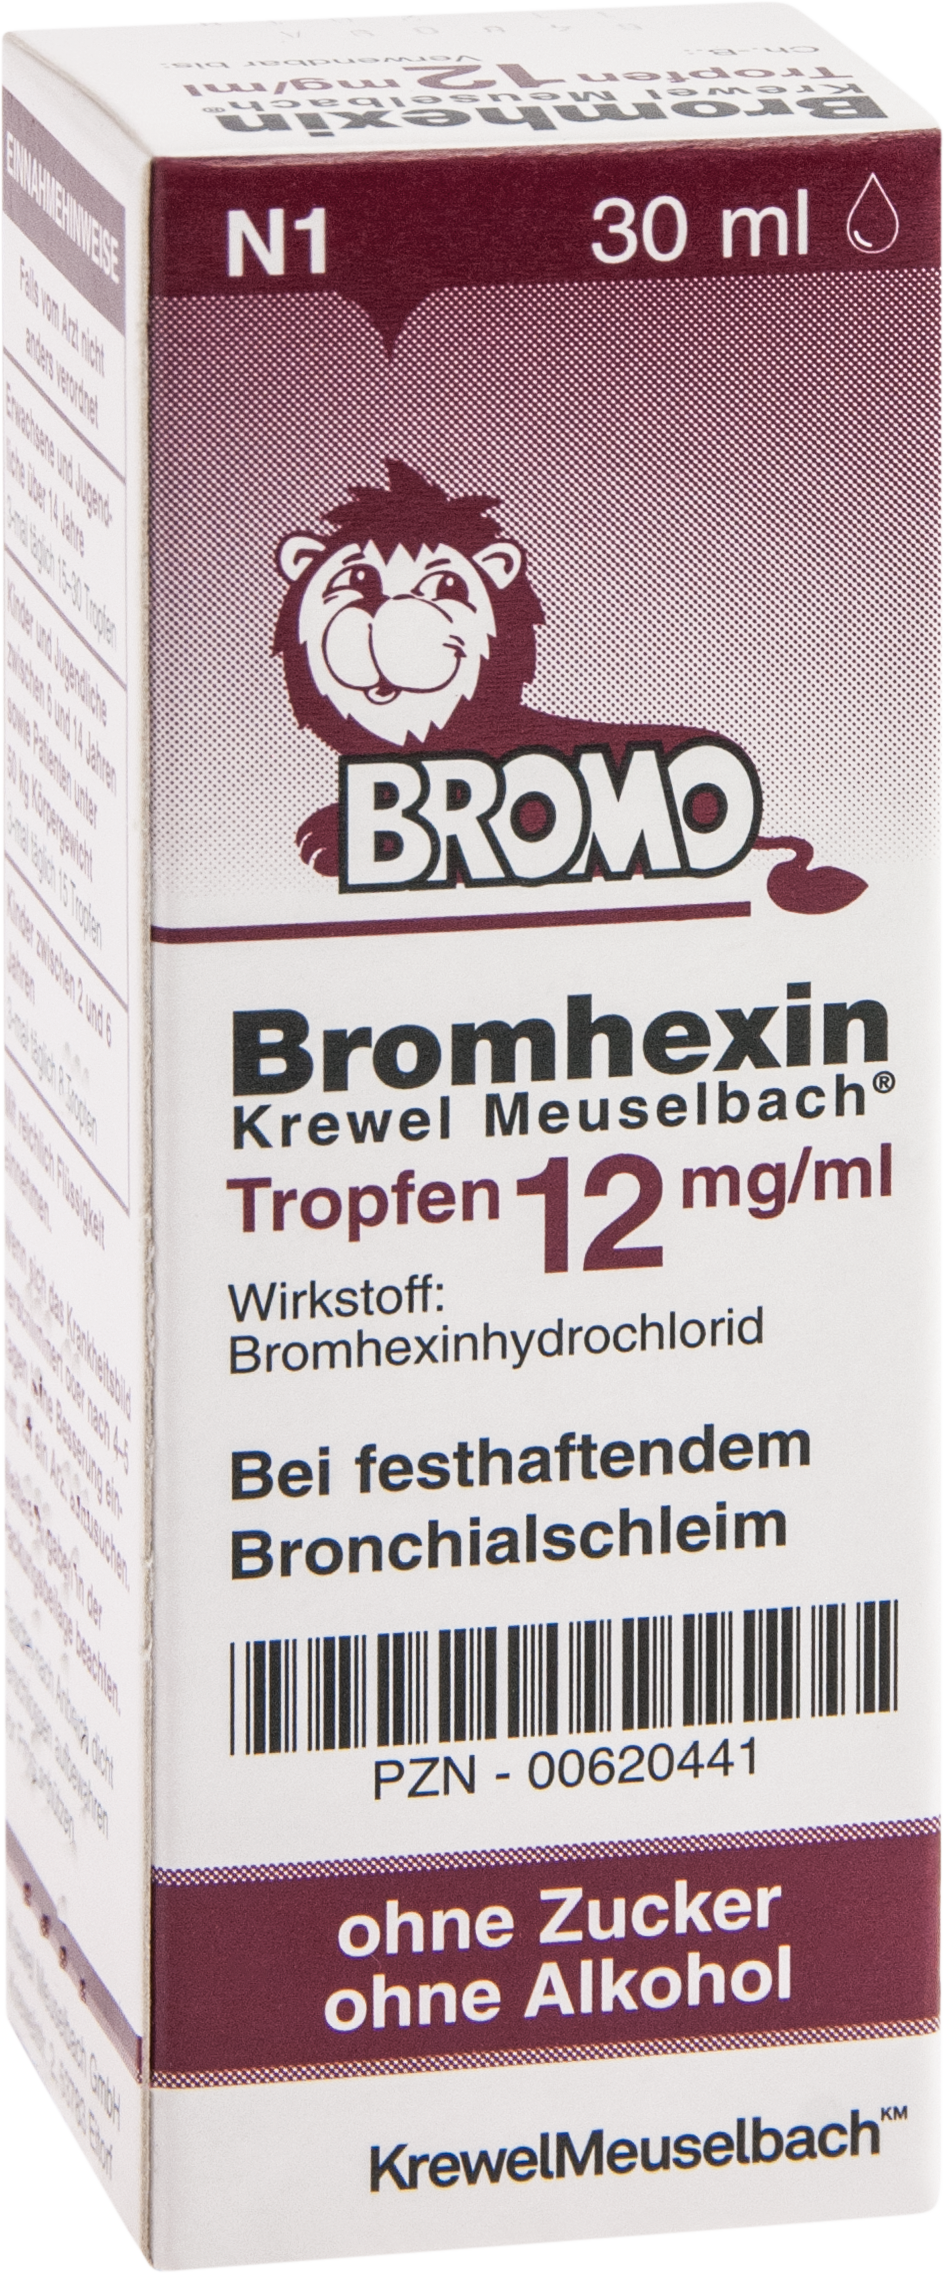 Bromhexin K.Meuselb.Trf.12mg/ml